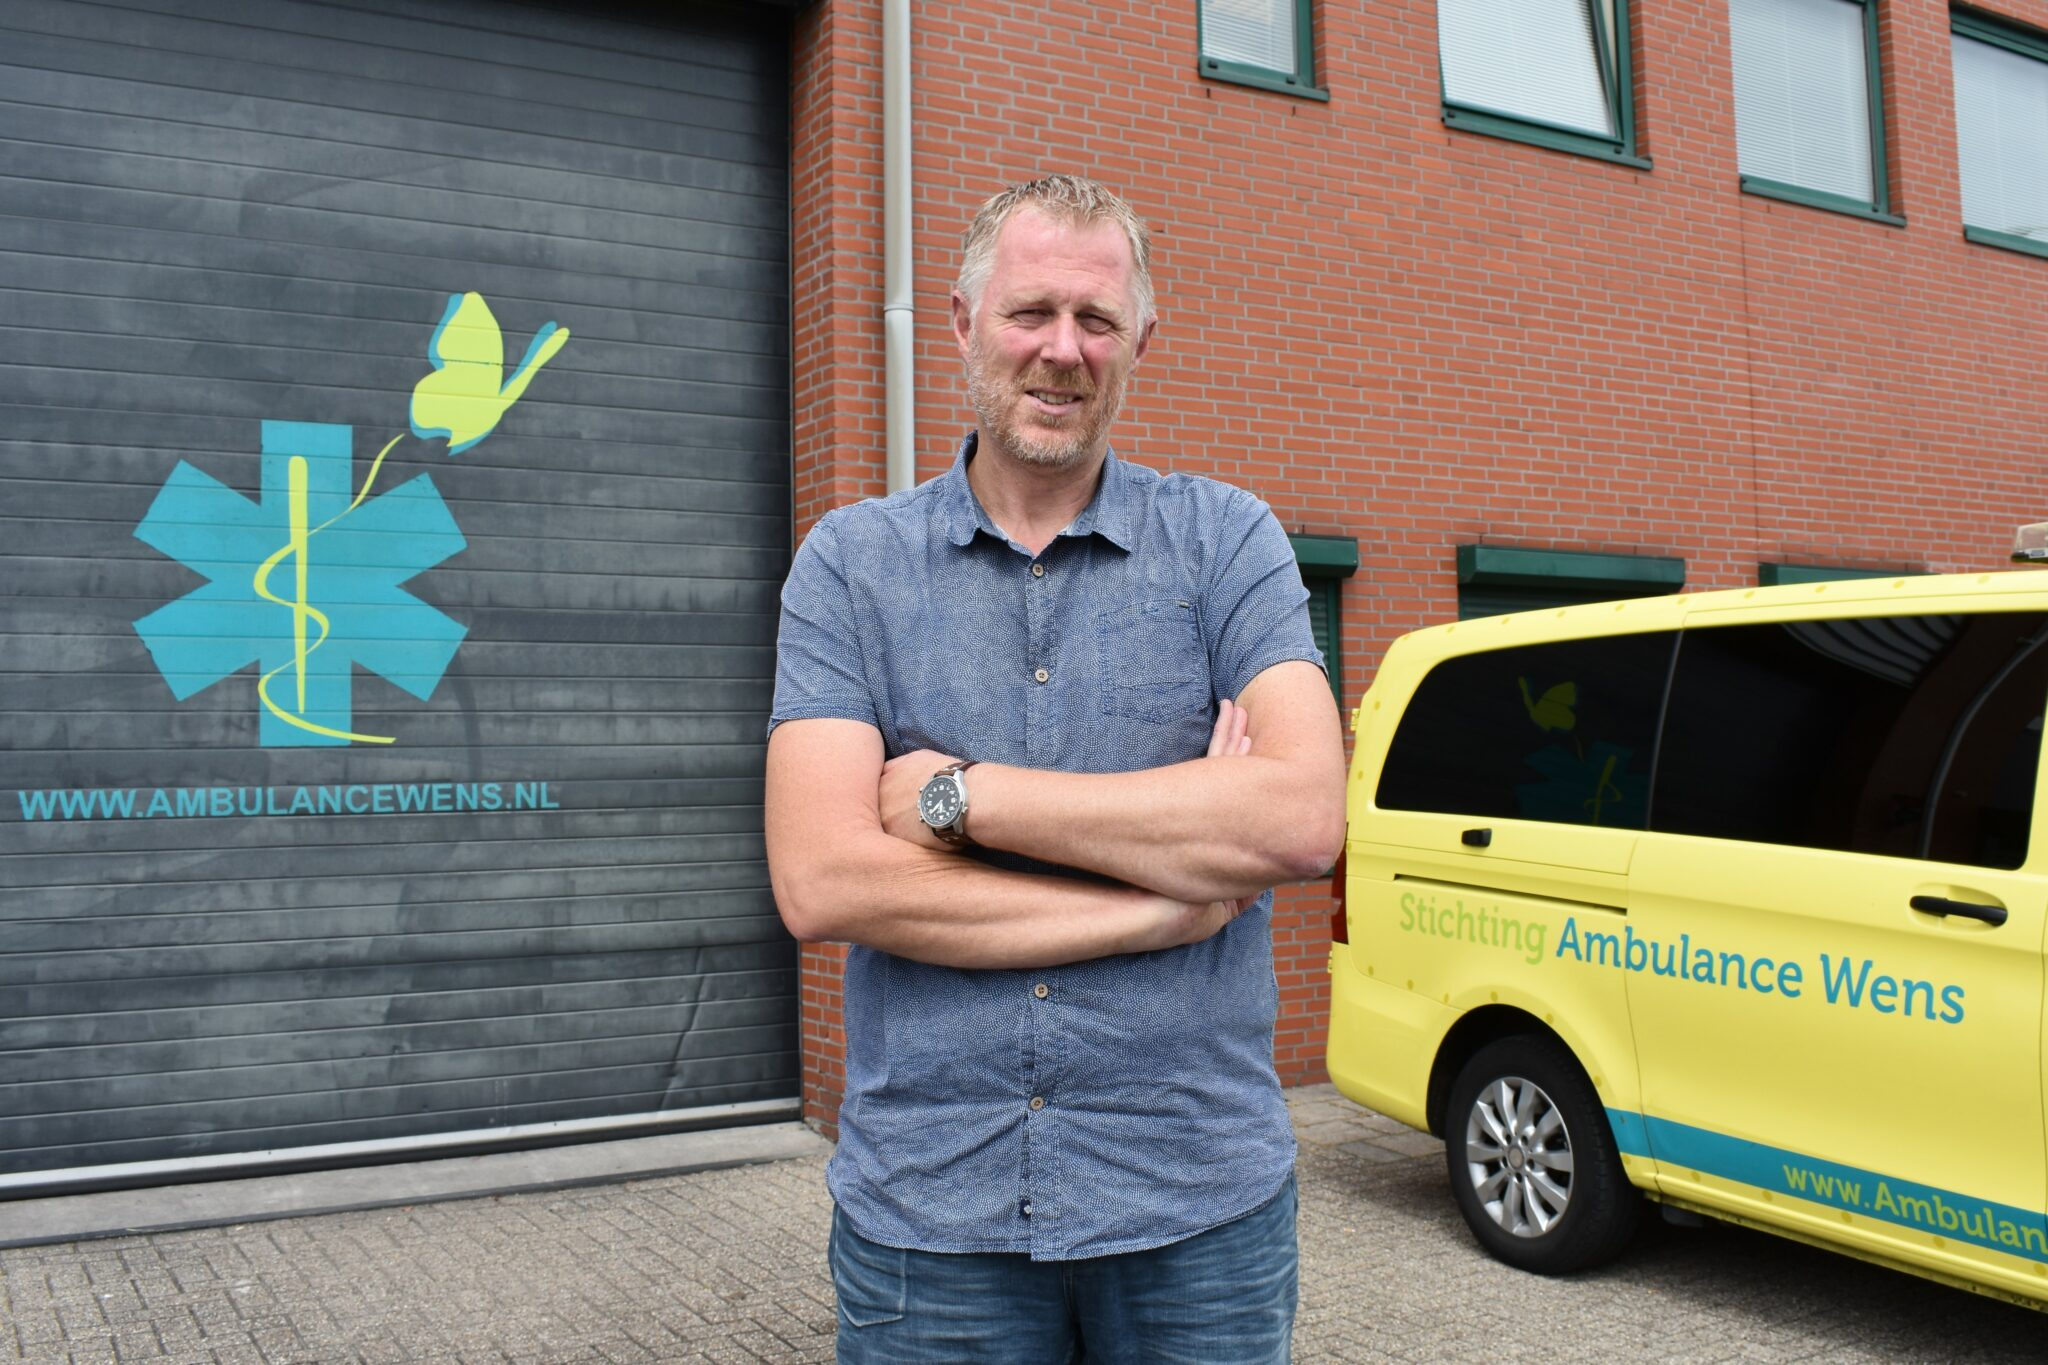 Stichting Ambulance Wens Kees